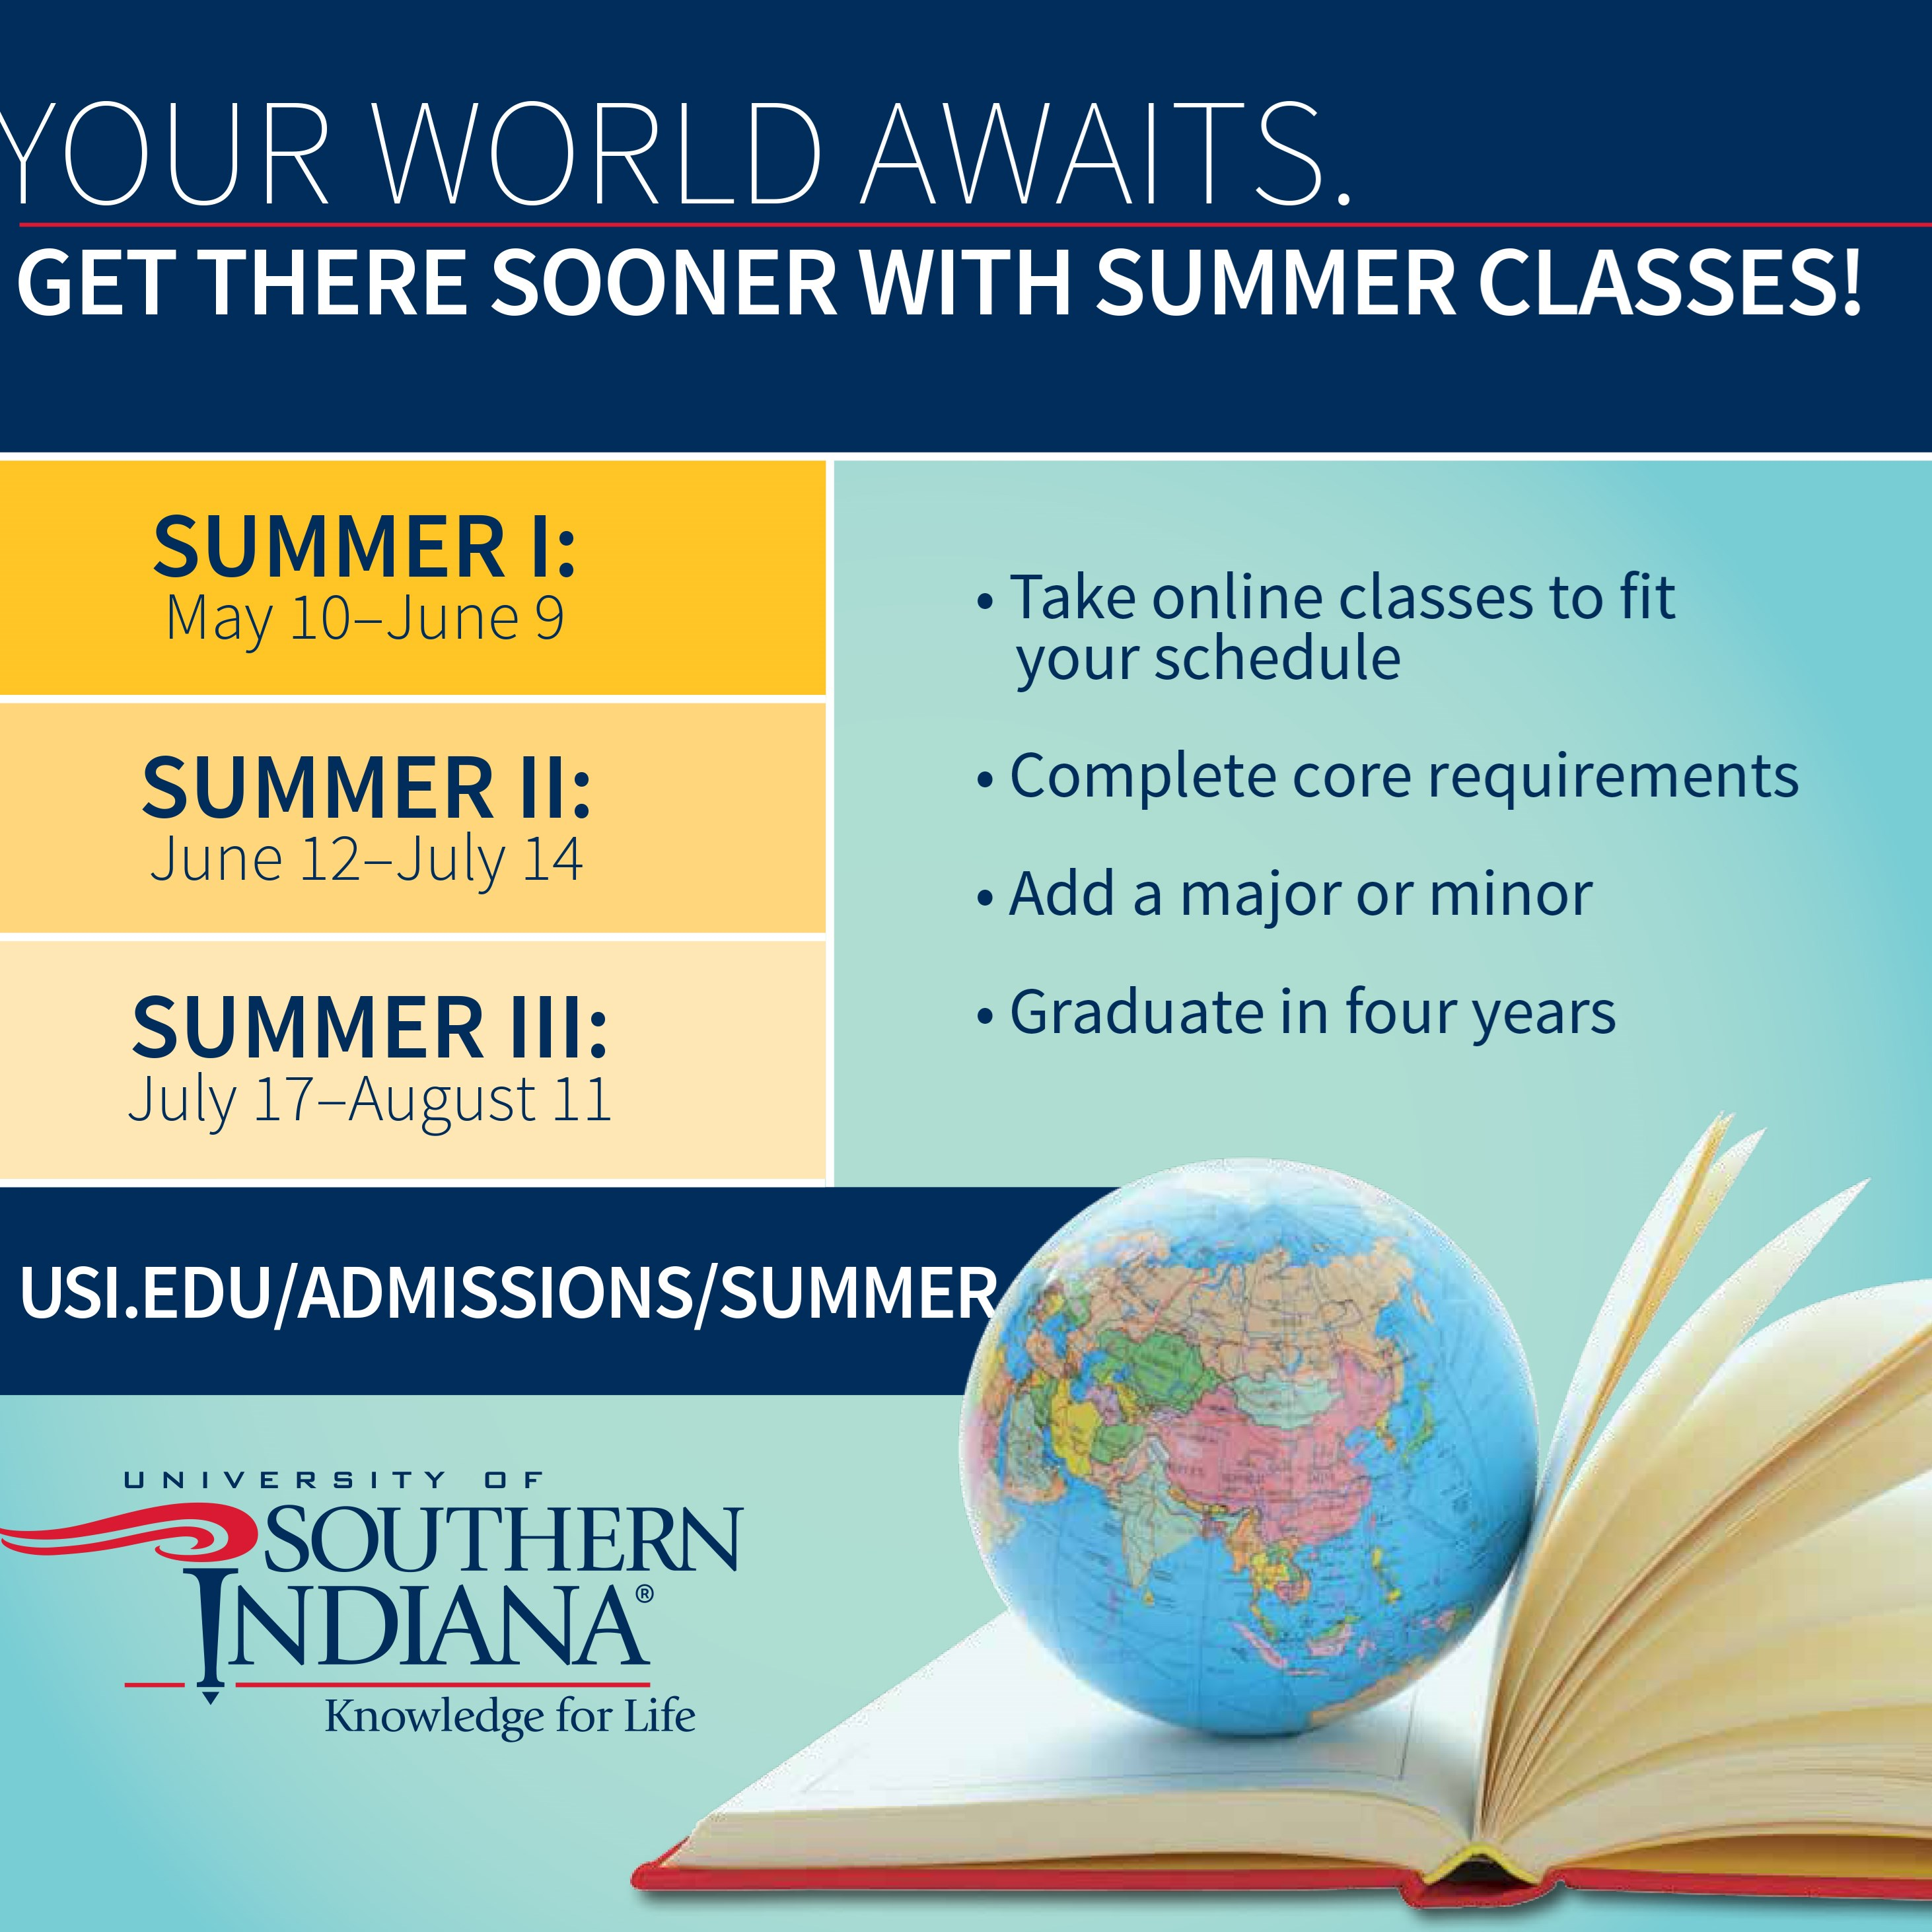 Students from USI, other universities, invited to take advantage of USI's summer terms